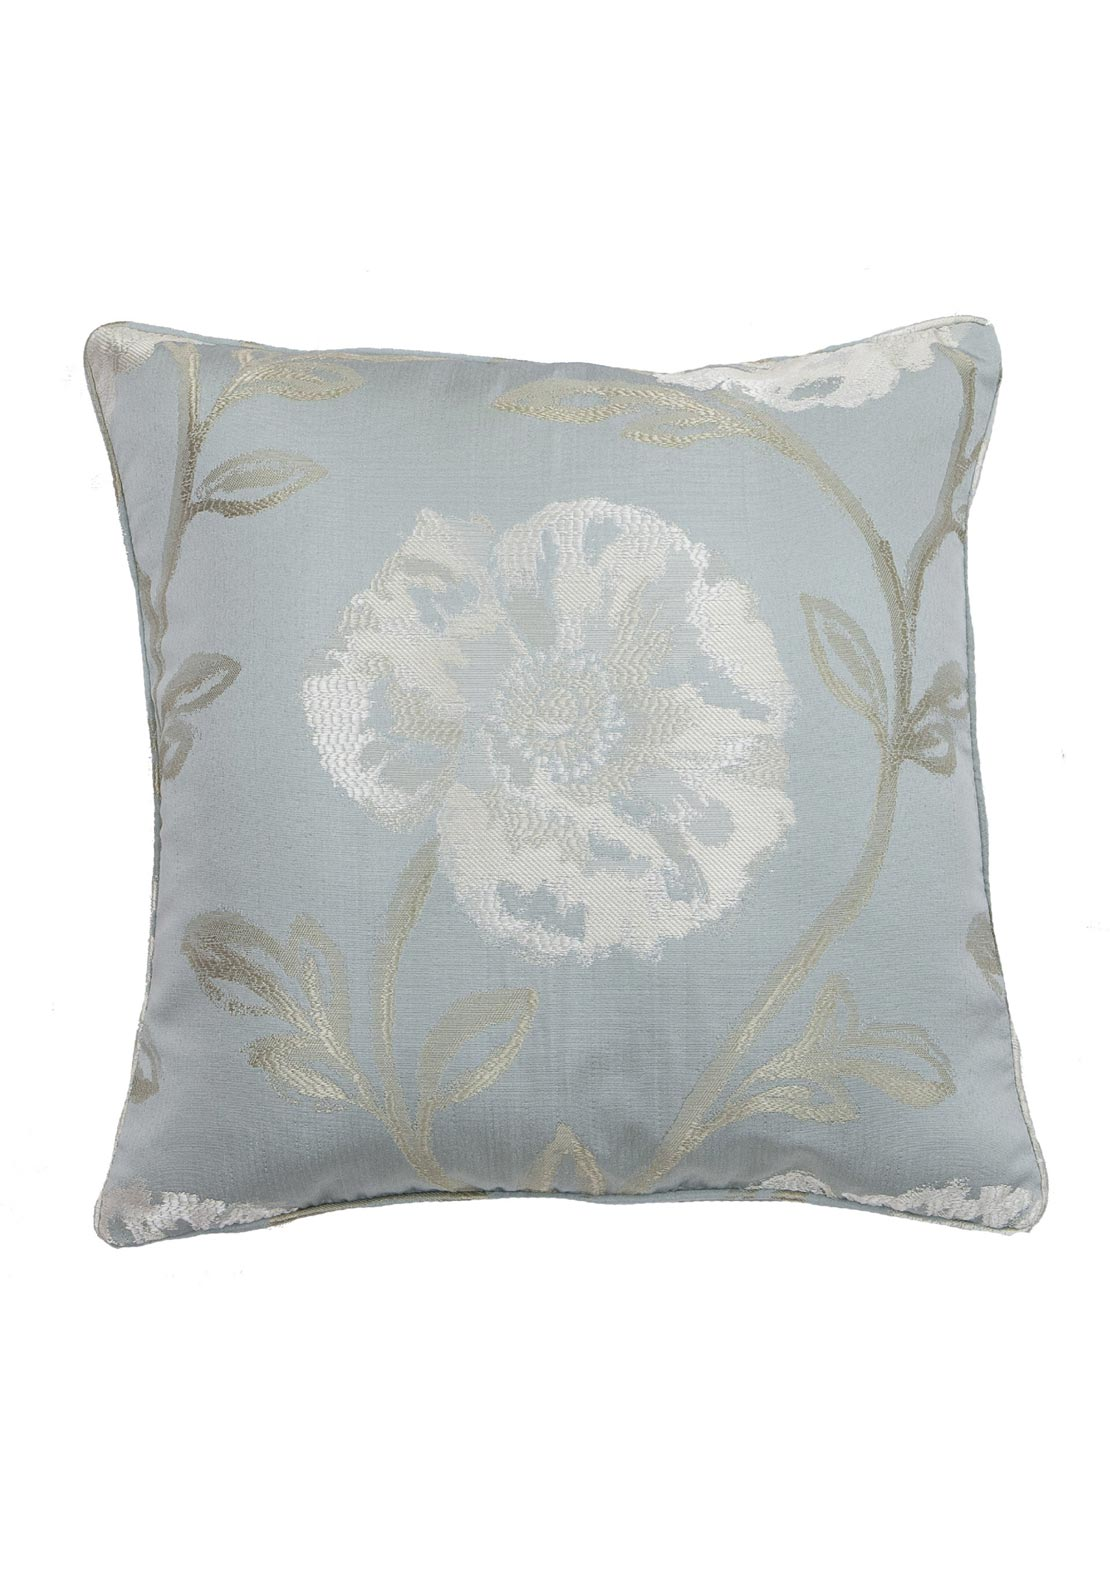 Scatterbox Maisey Feather Filled Cushion 45 x 45cm, Duck Egg